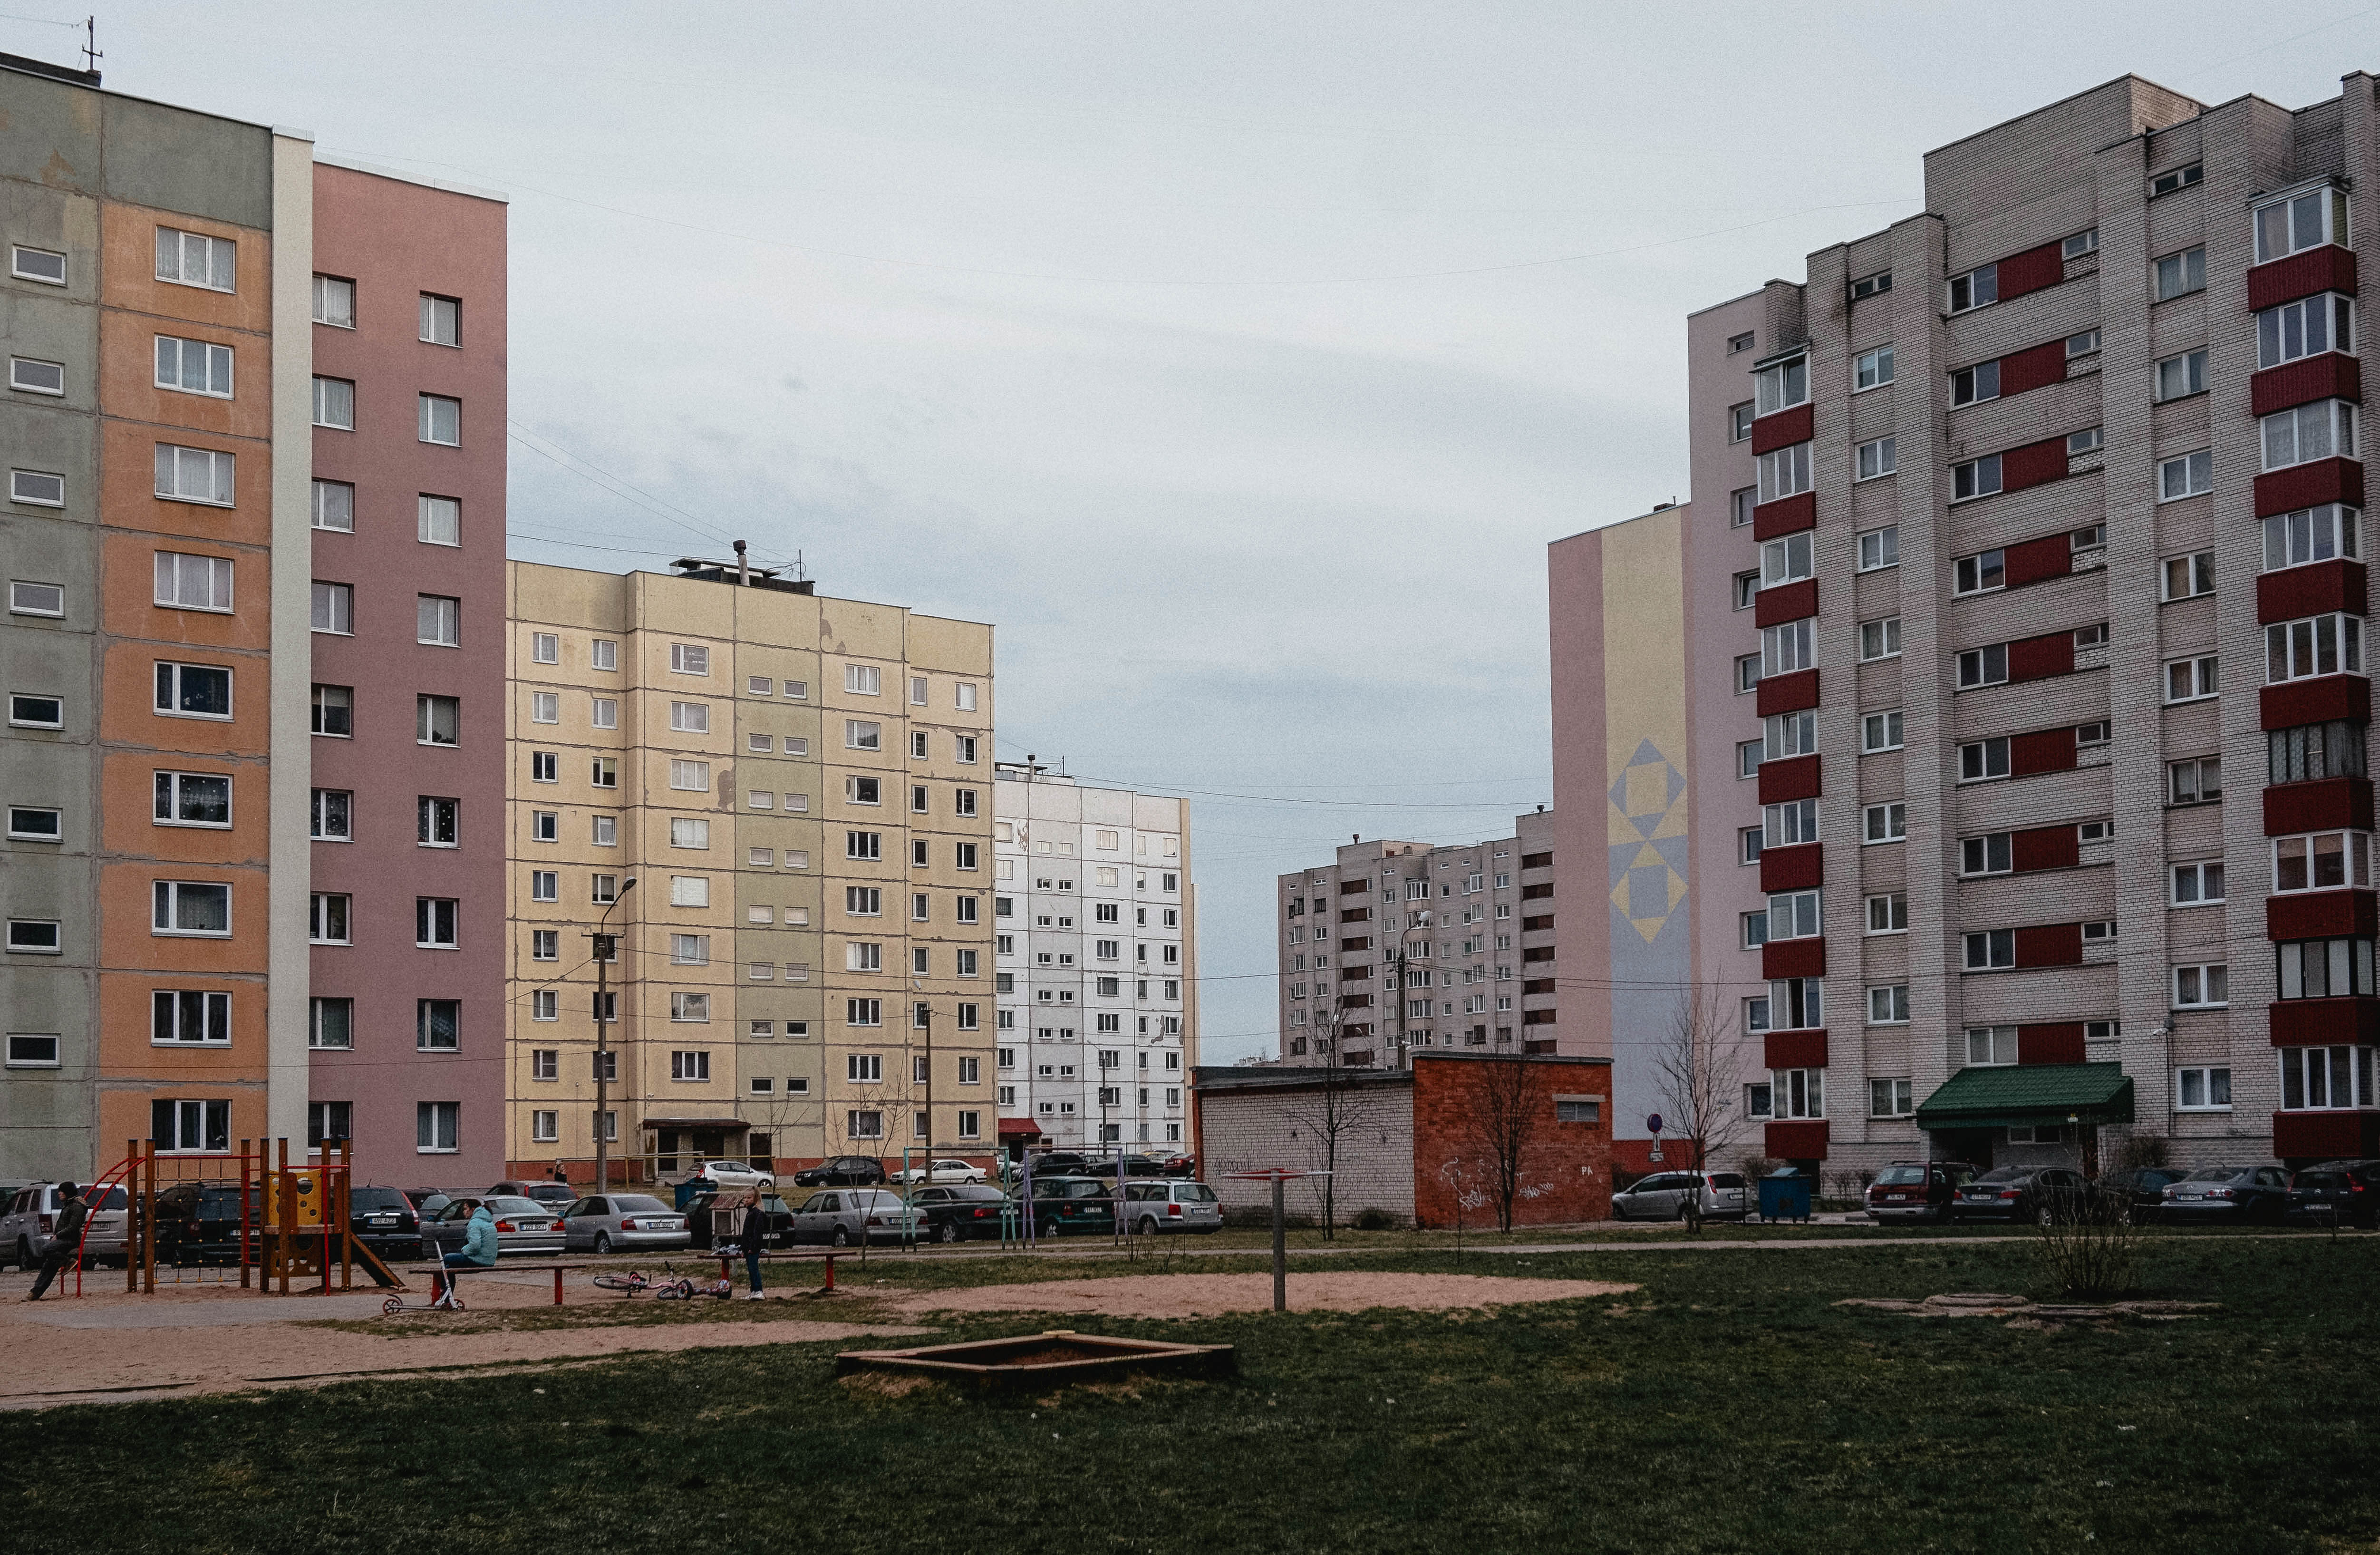 I Live In An Authentic Post-Soviet City Which Borders With Russia.